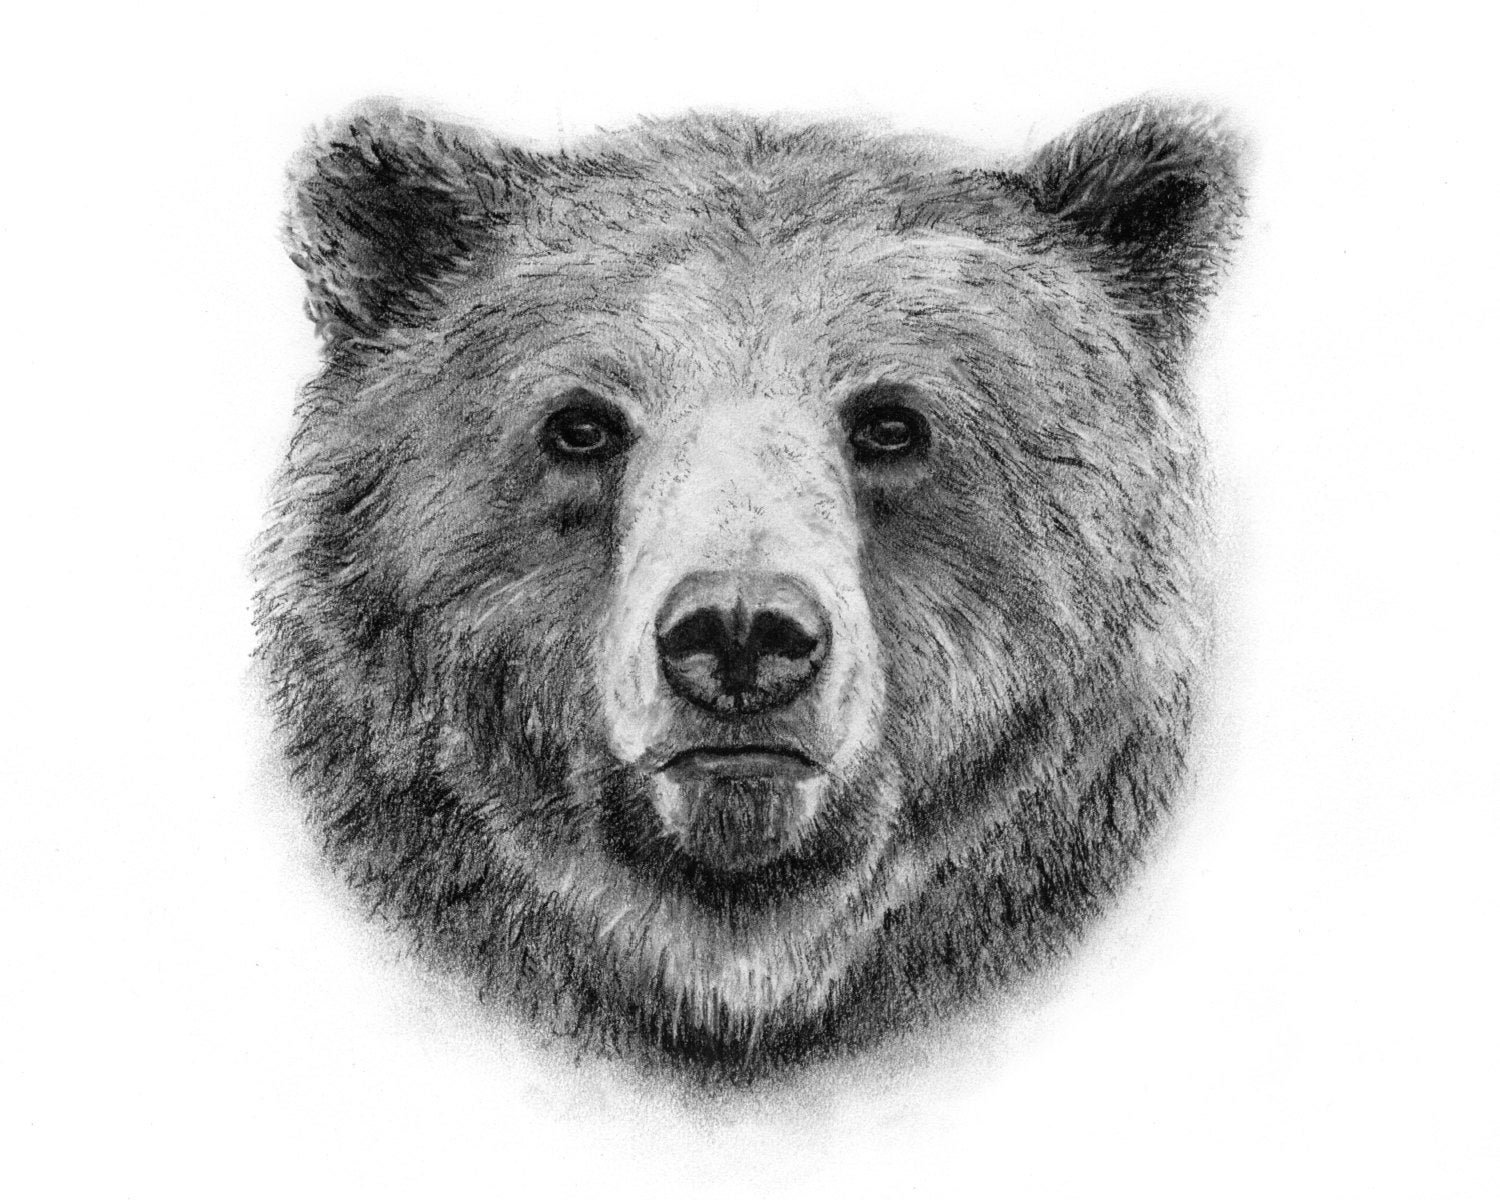 Bear face drawing